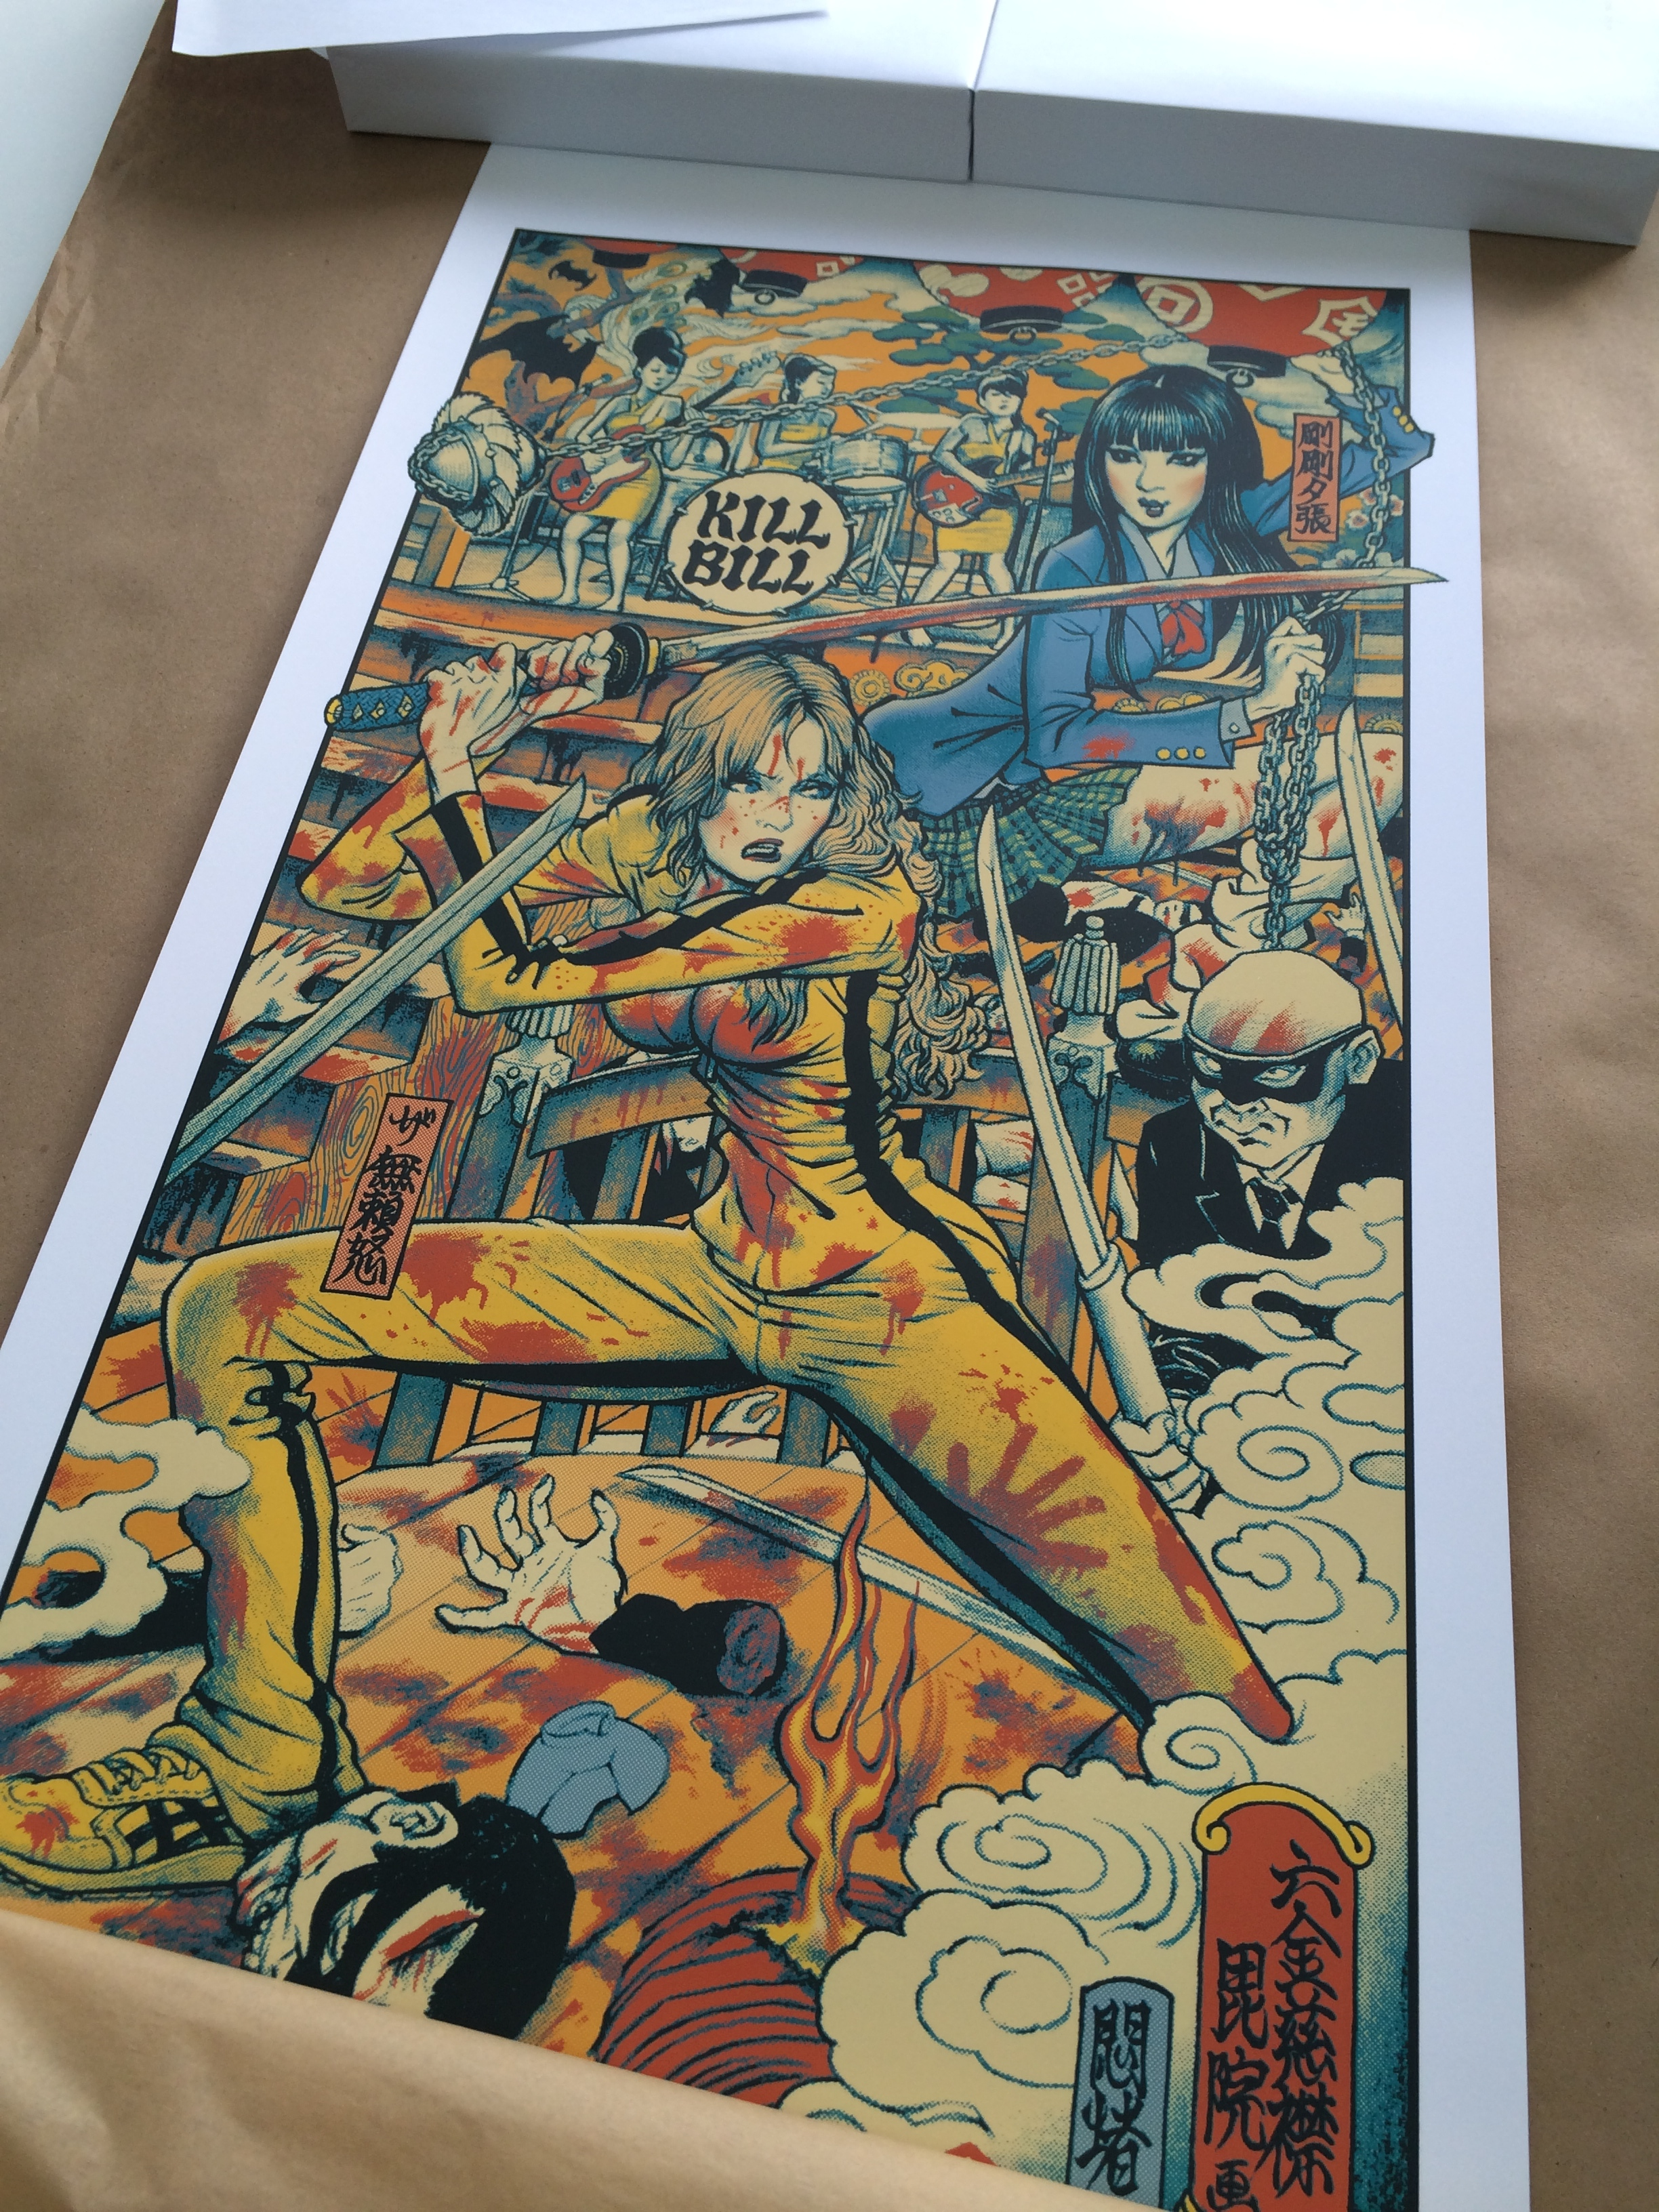 「キルビル」KILL BILL Poster by Rockin' Jelly Bean. 18″x36″ screen print. Hand numbered. Edition of 520. Printed by D&L Screenprinting.